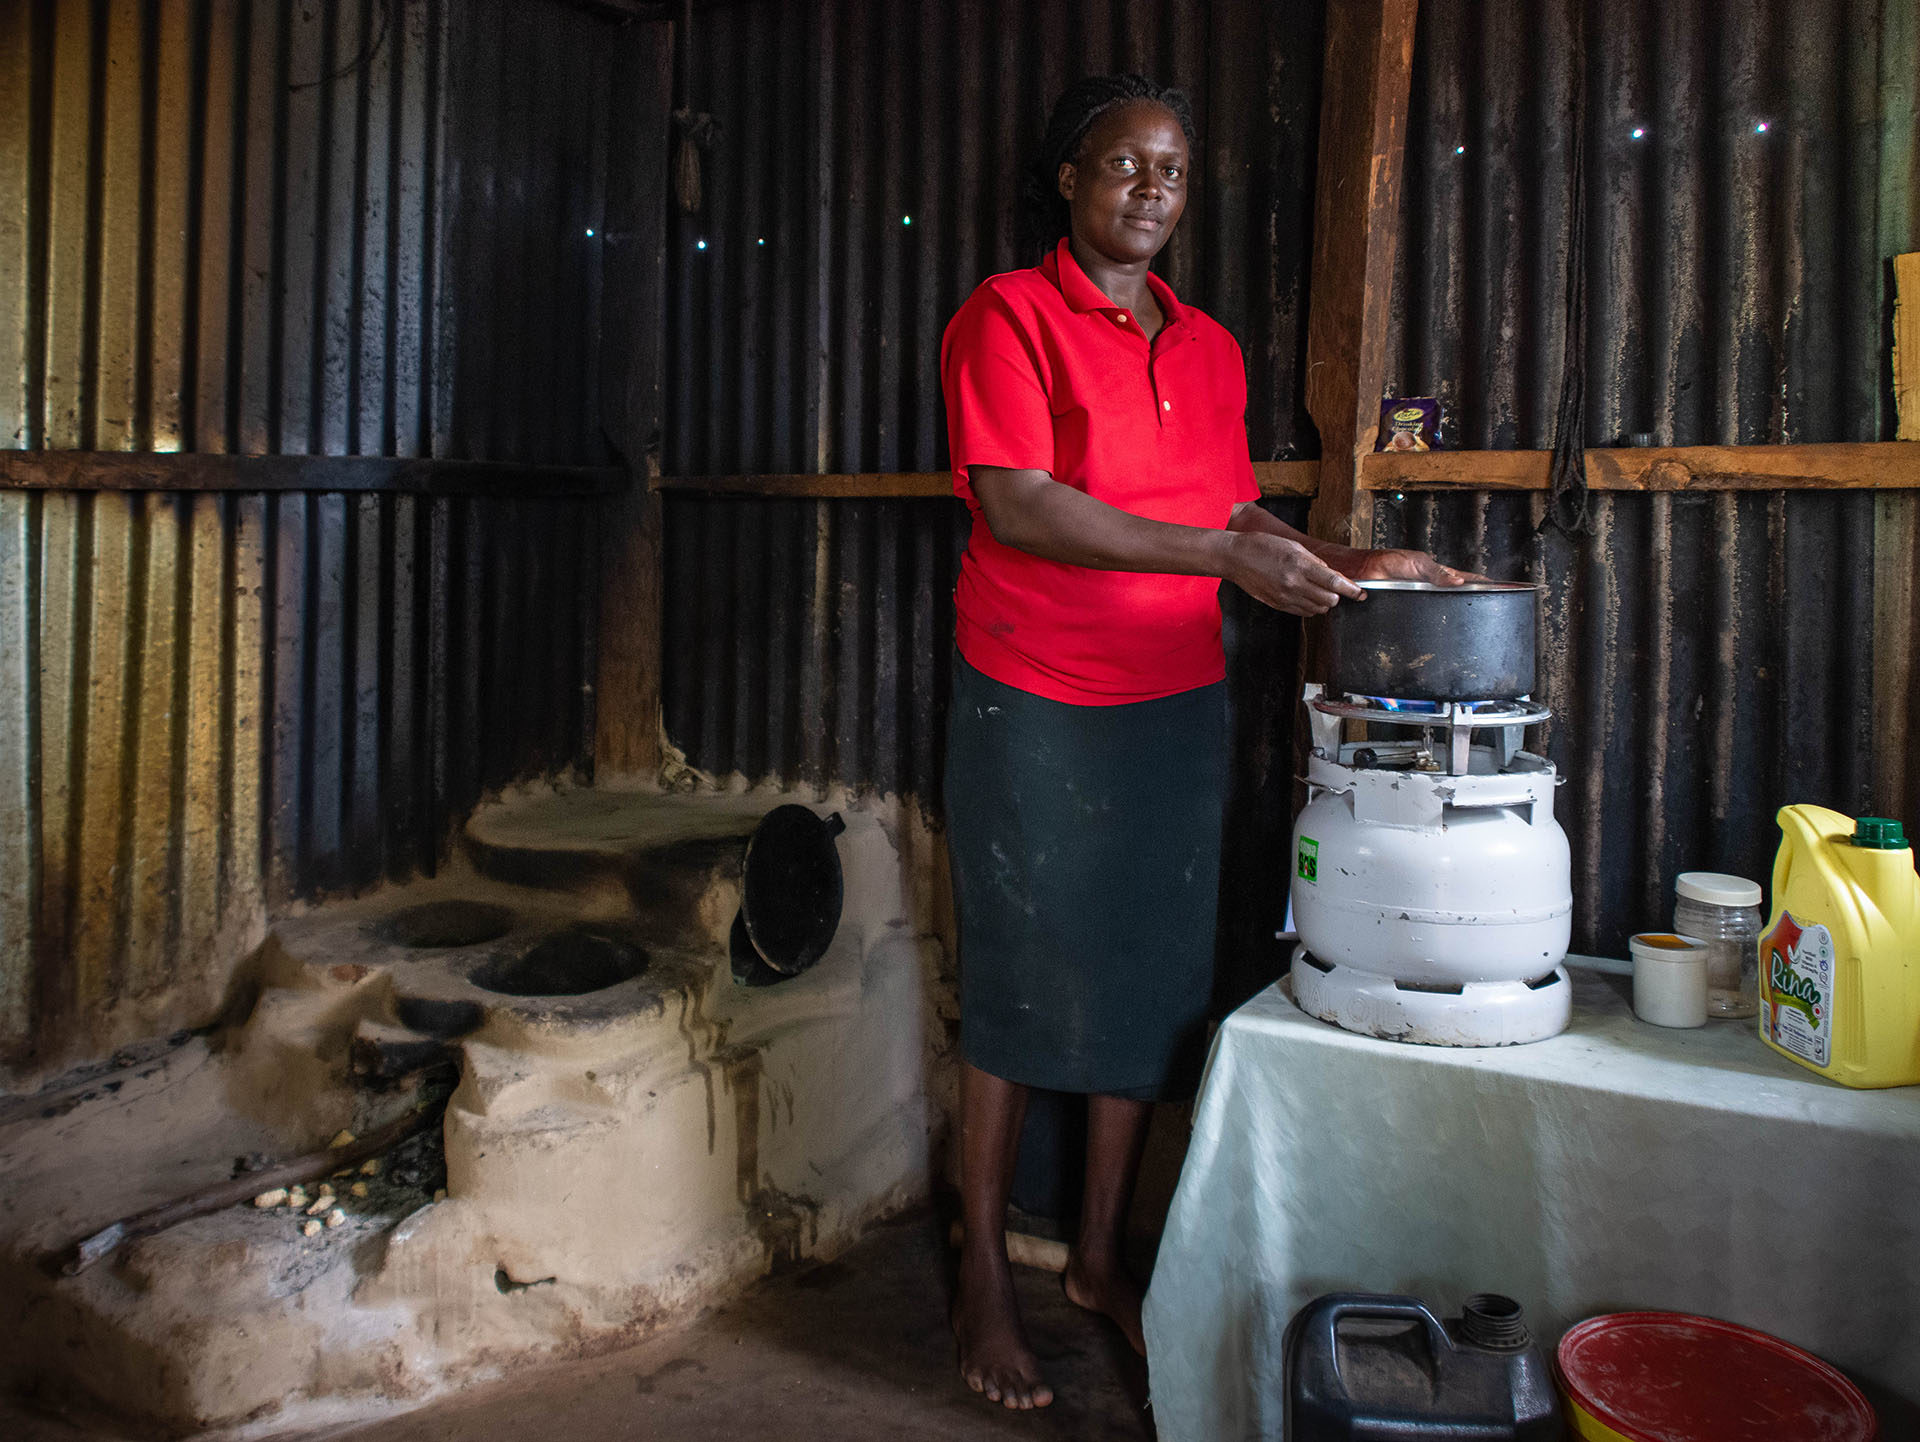 LPG provides one of the most efficient and convenient fuels for clean cooking